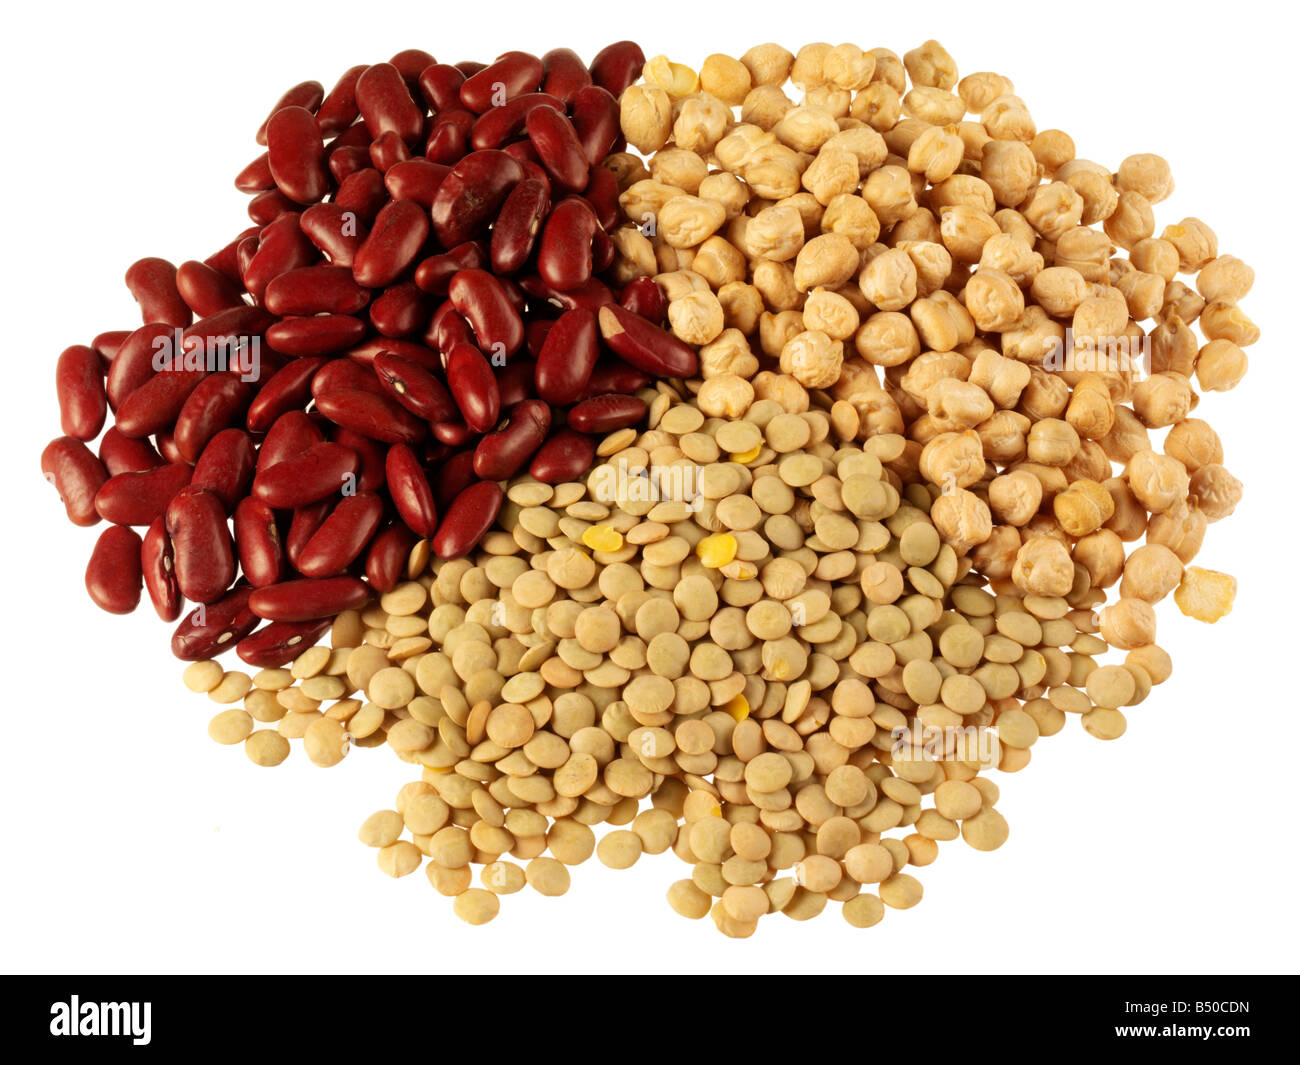 What Color Are Natural Lentils